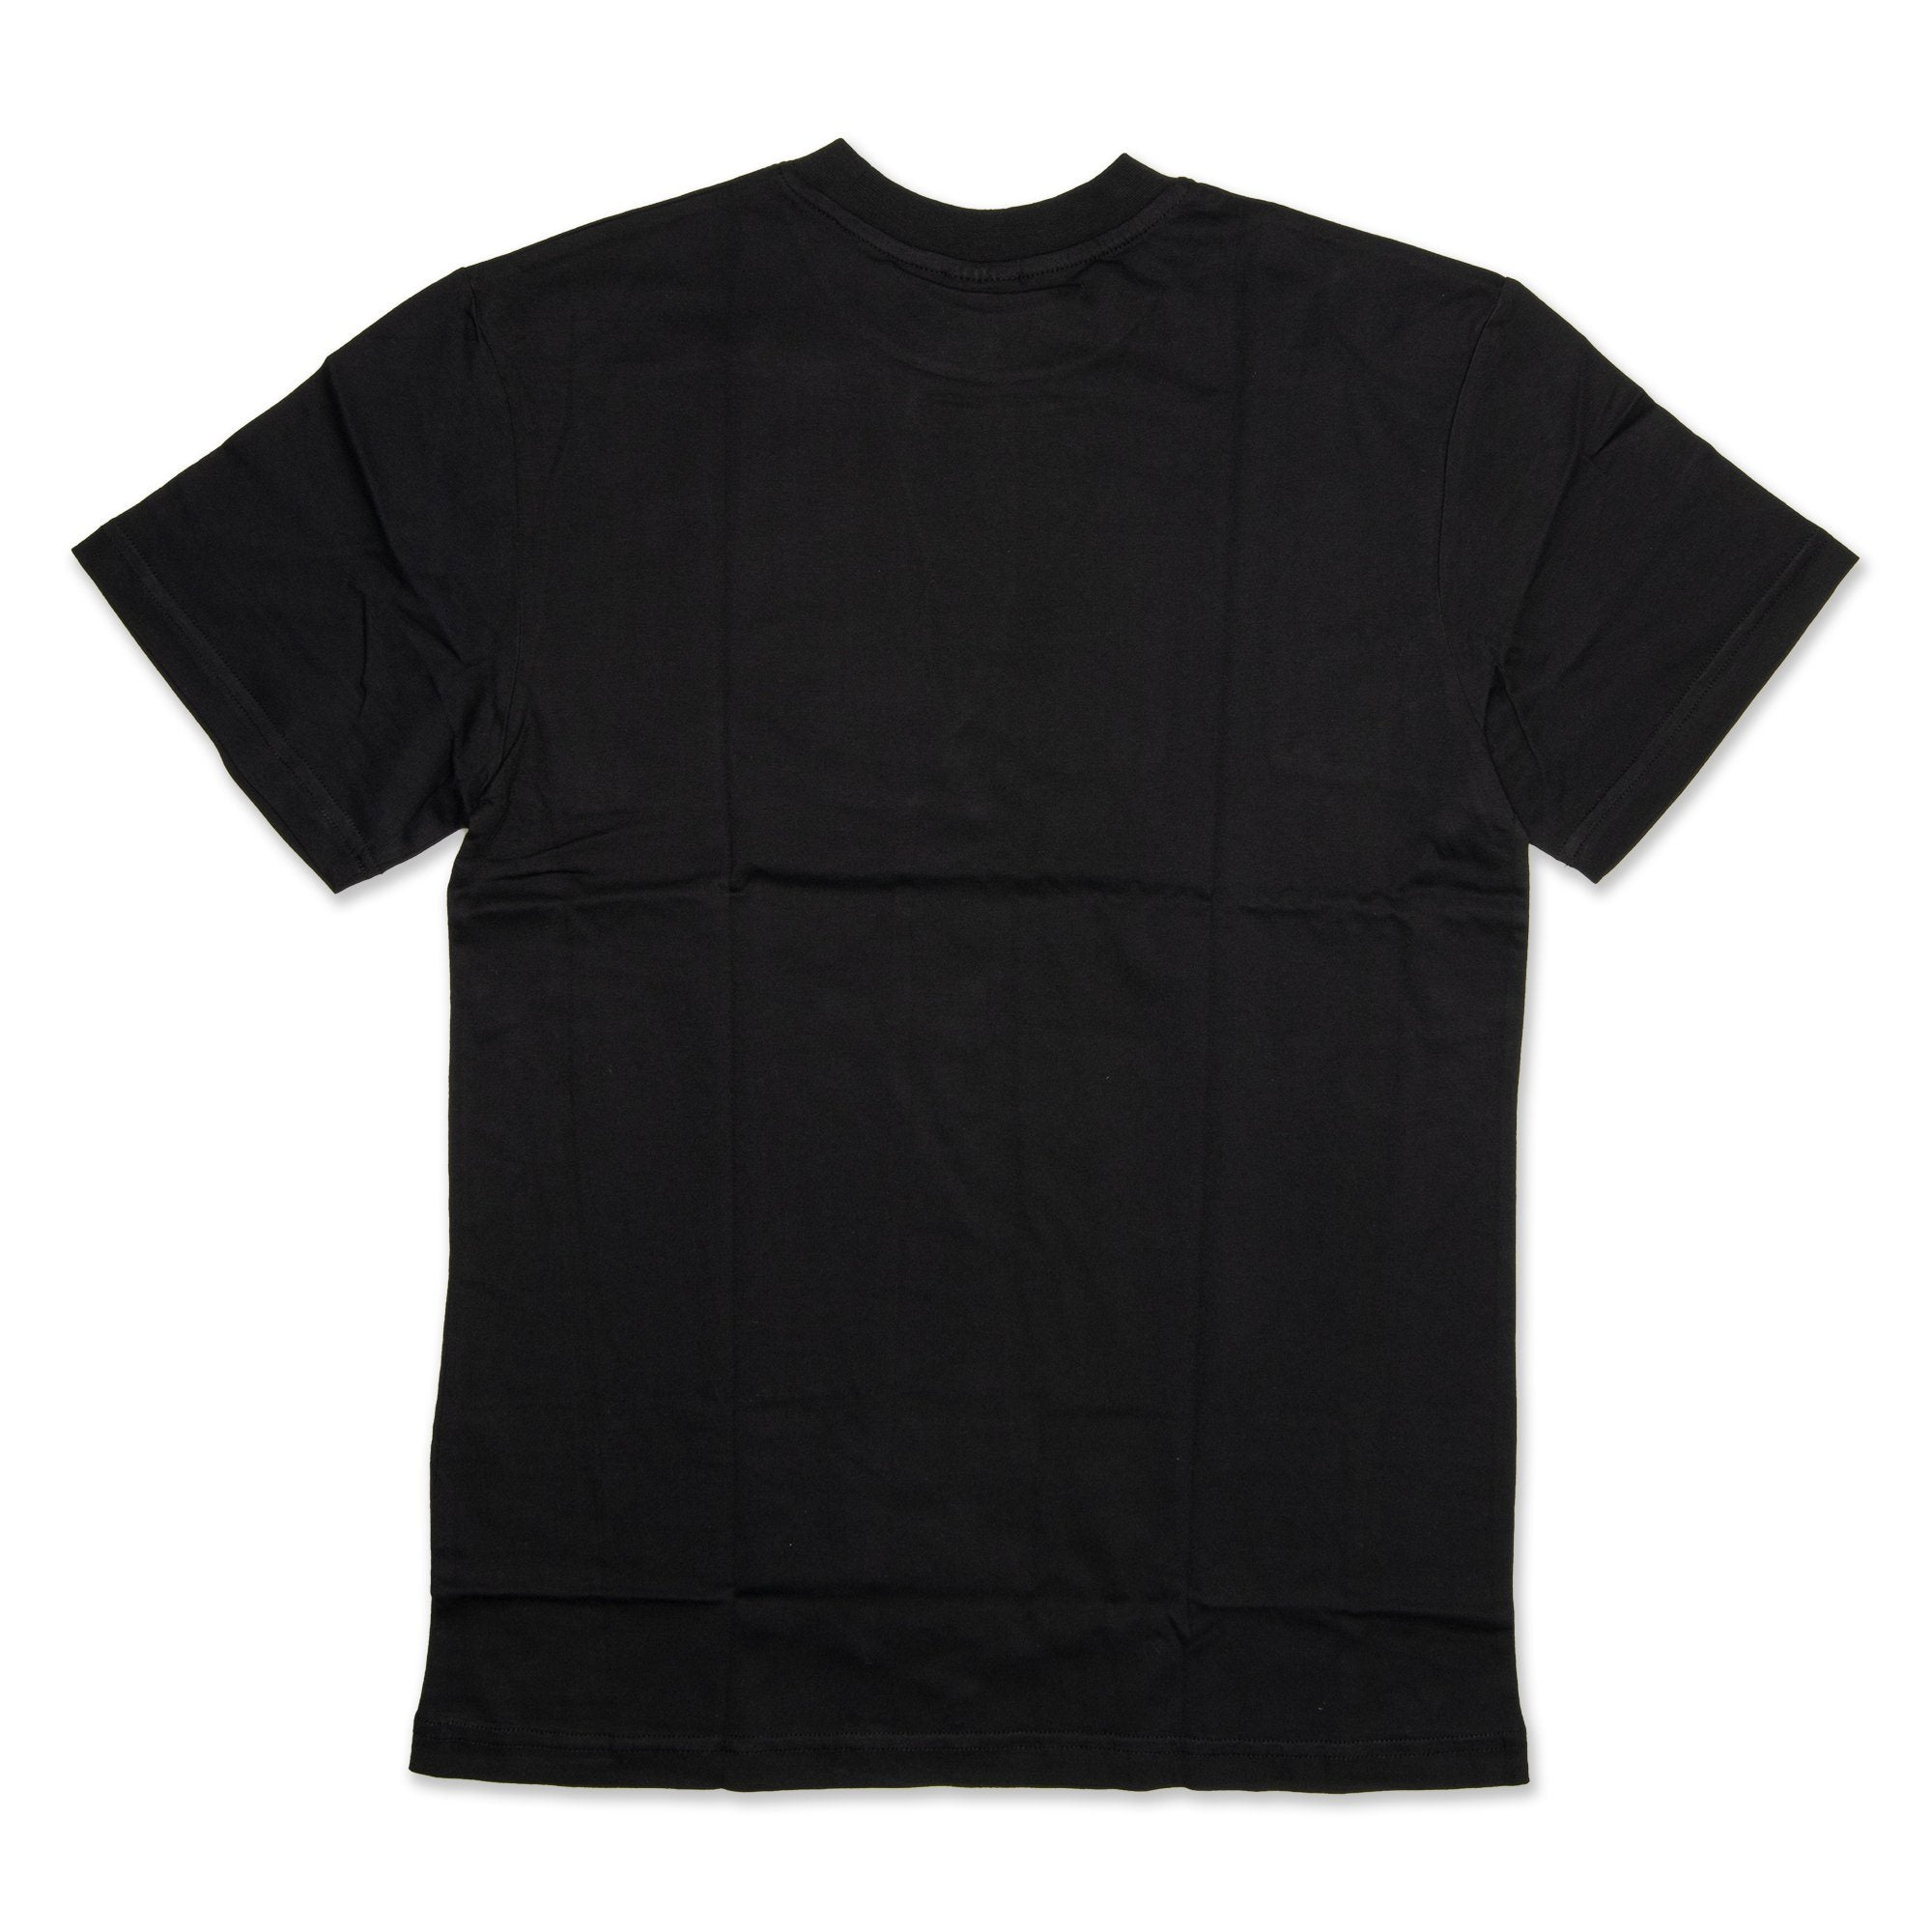 Stubbies Crew Neck Men's T-Shirt - Black Workwear Stubbies